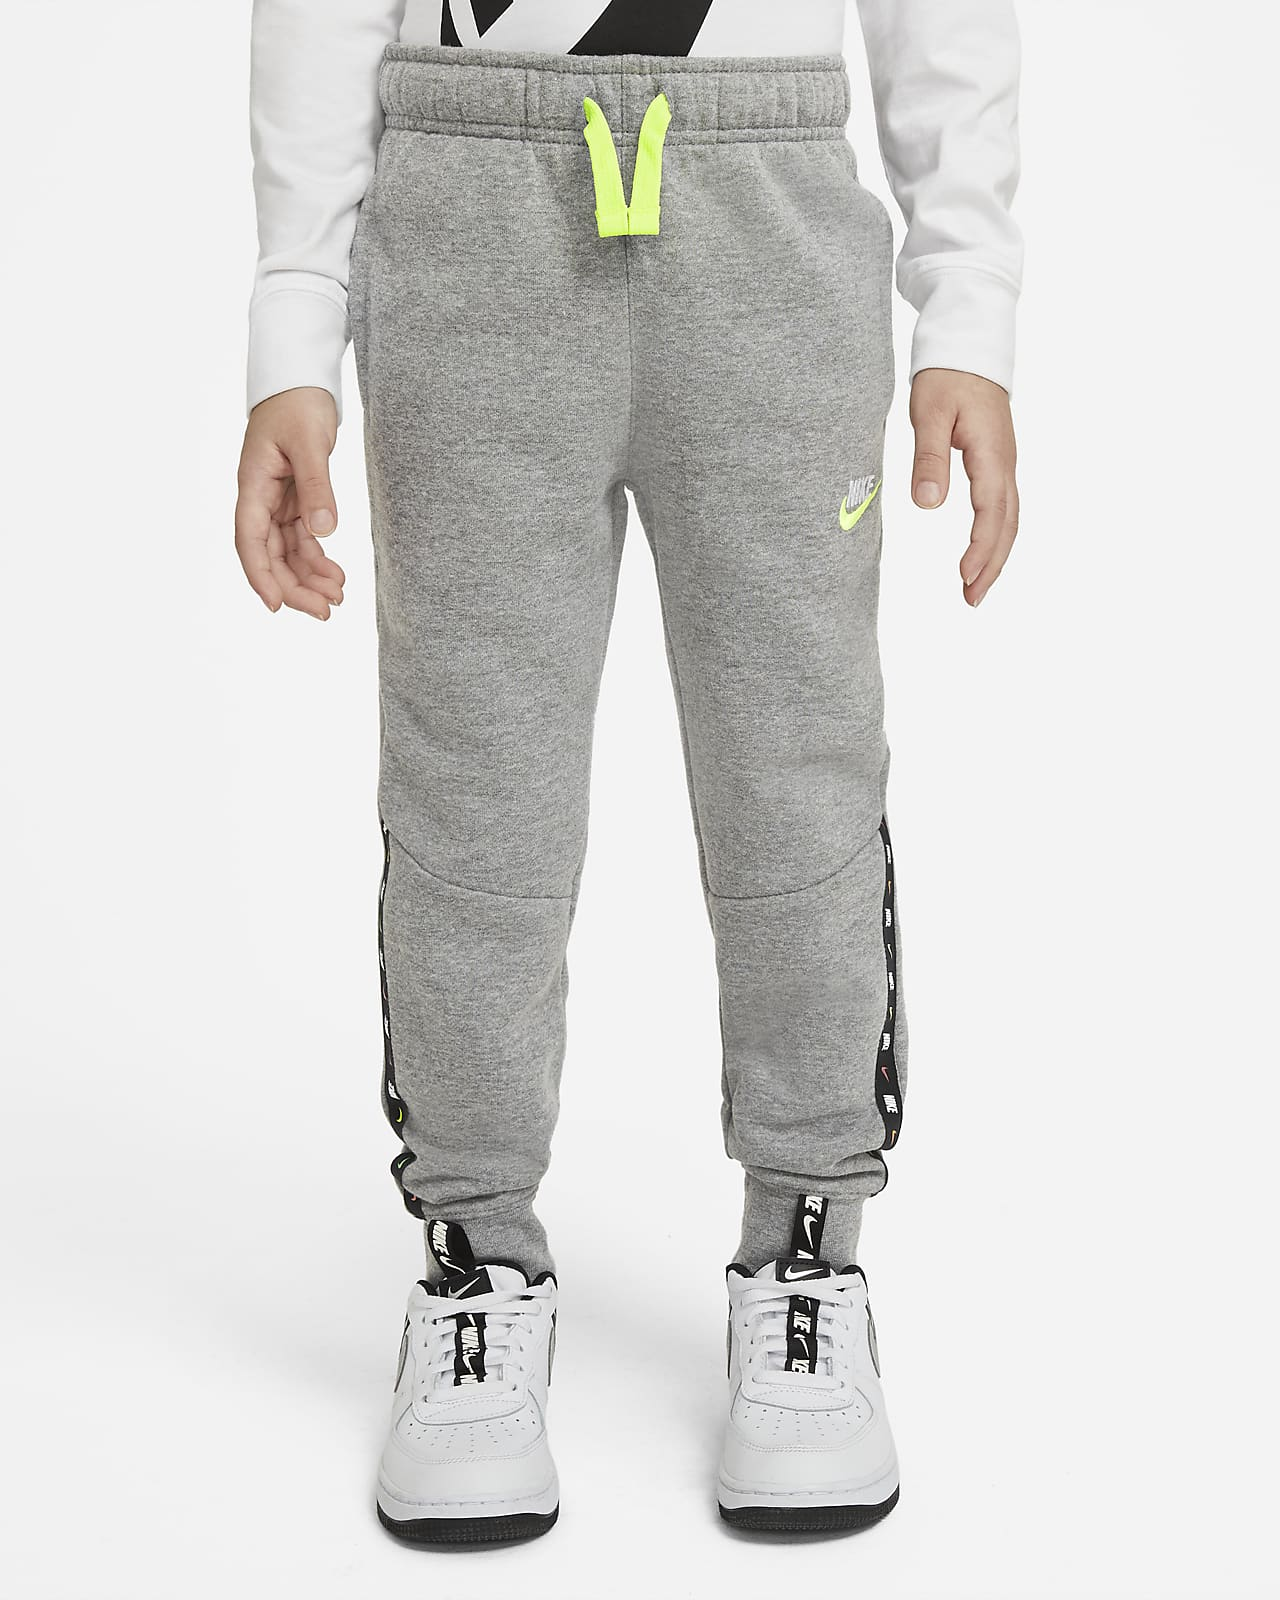 Nike Little Kids' Joggers